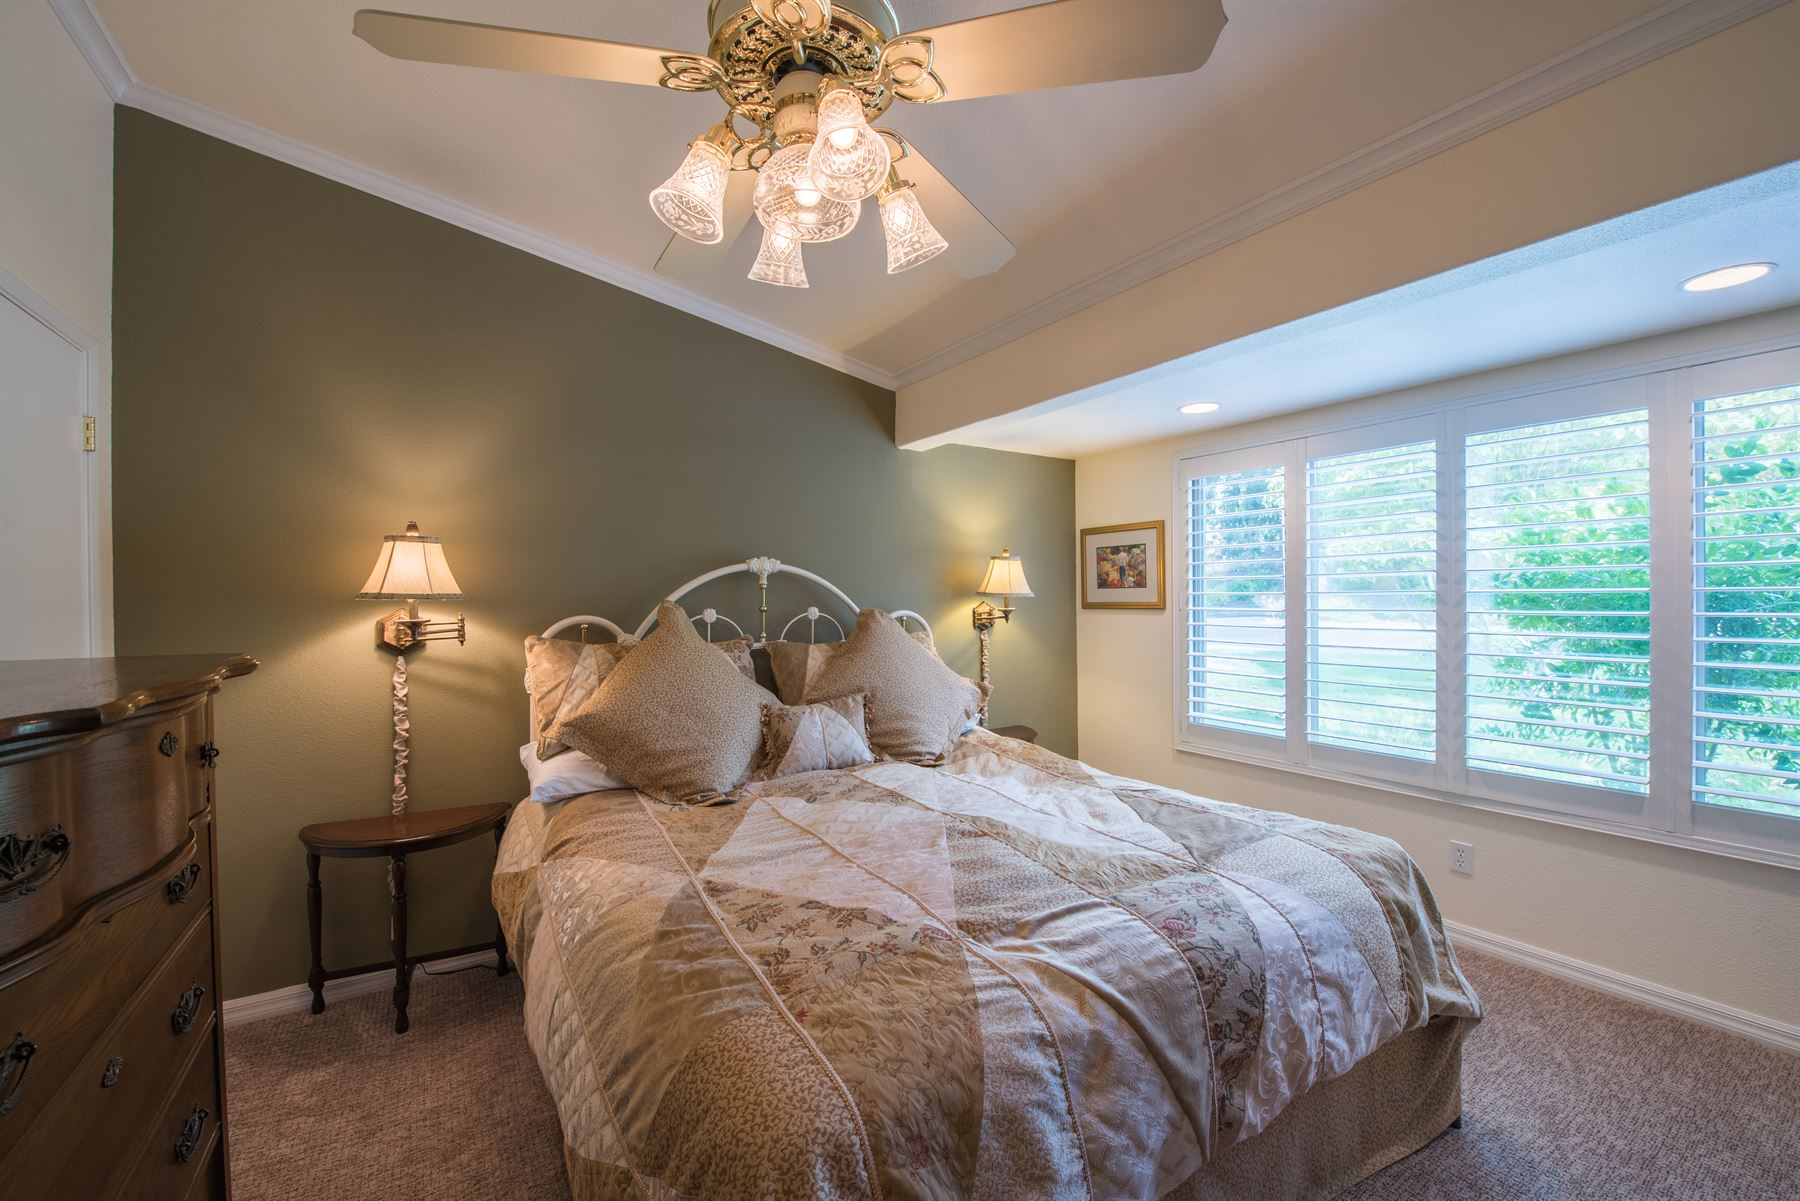 Golfer's Getaway - Interior - Bedroom with checkered tan and peach linens